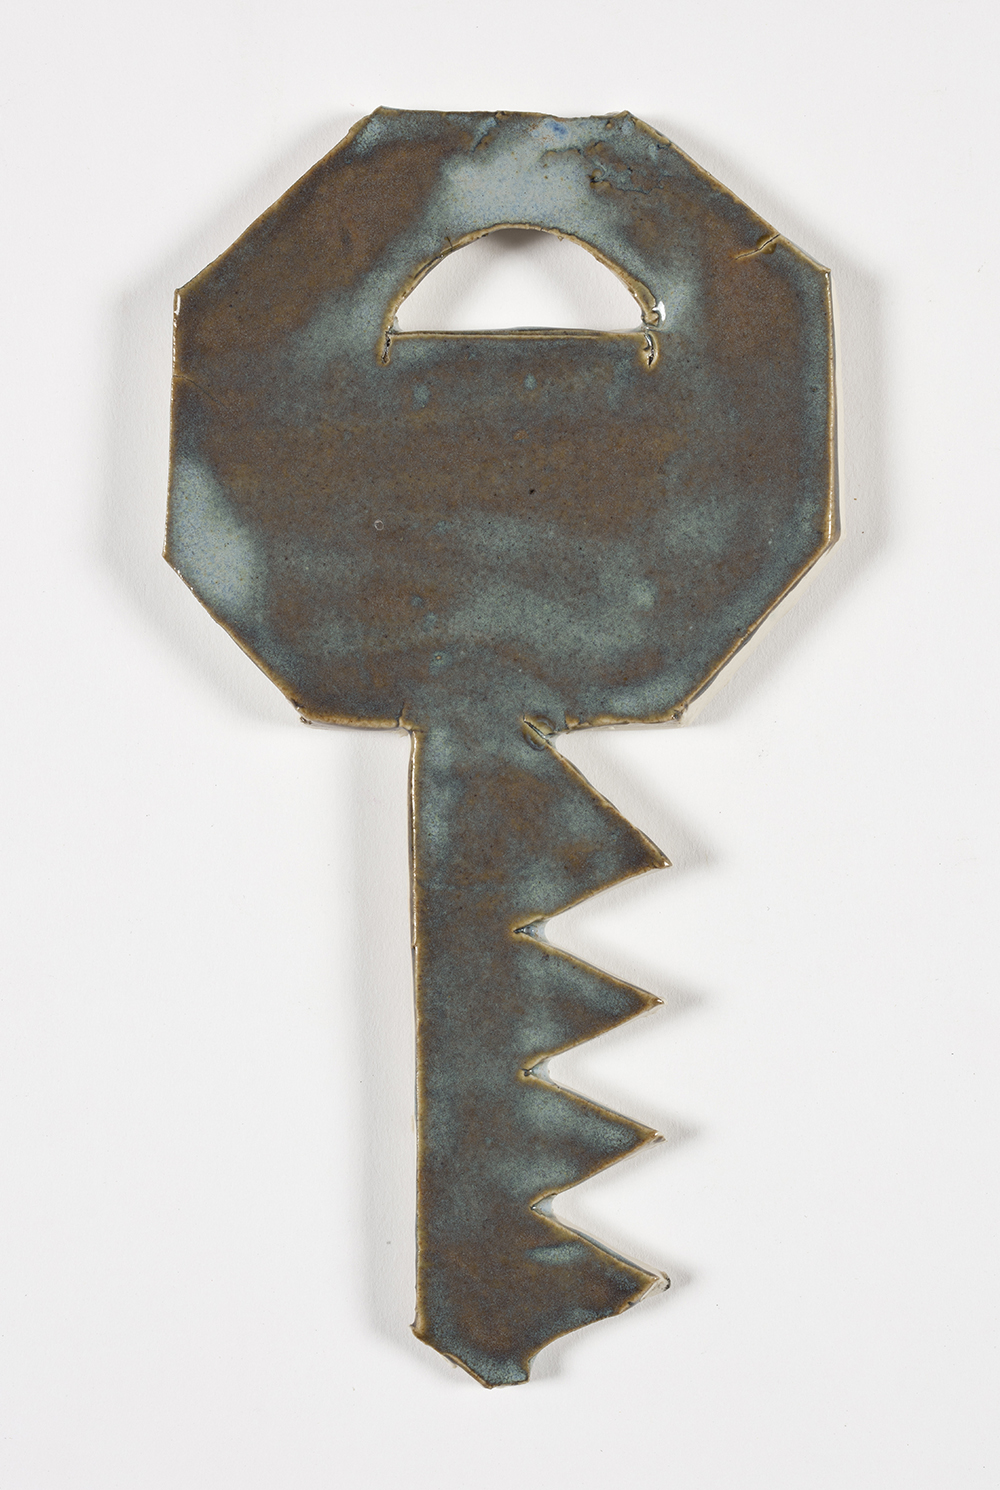 Kevin McNamee-Tweed.<em> Key (Hallo)</em>, 2019. Glazed ceramic, 7 1/4 x 4 inches (18.4 x 10.2 cm)